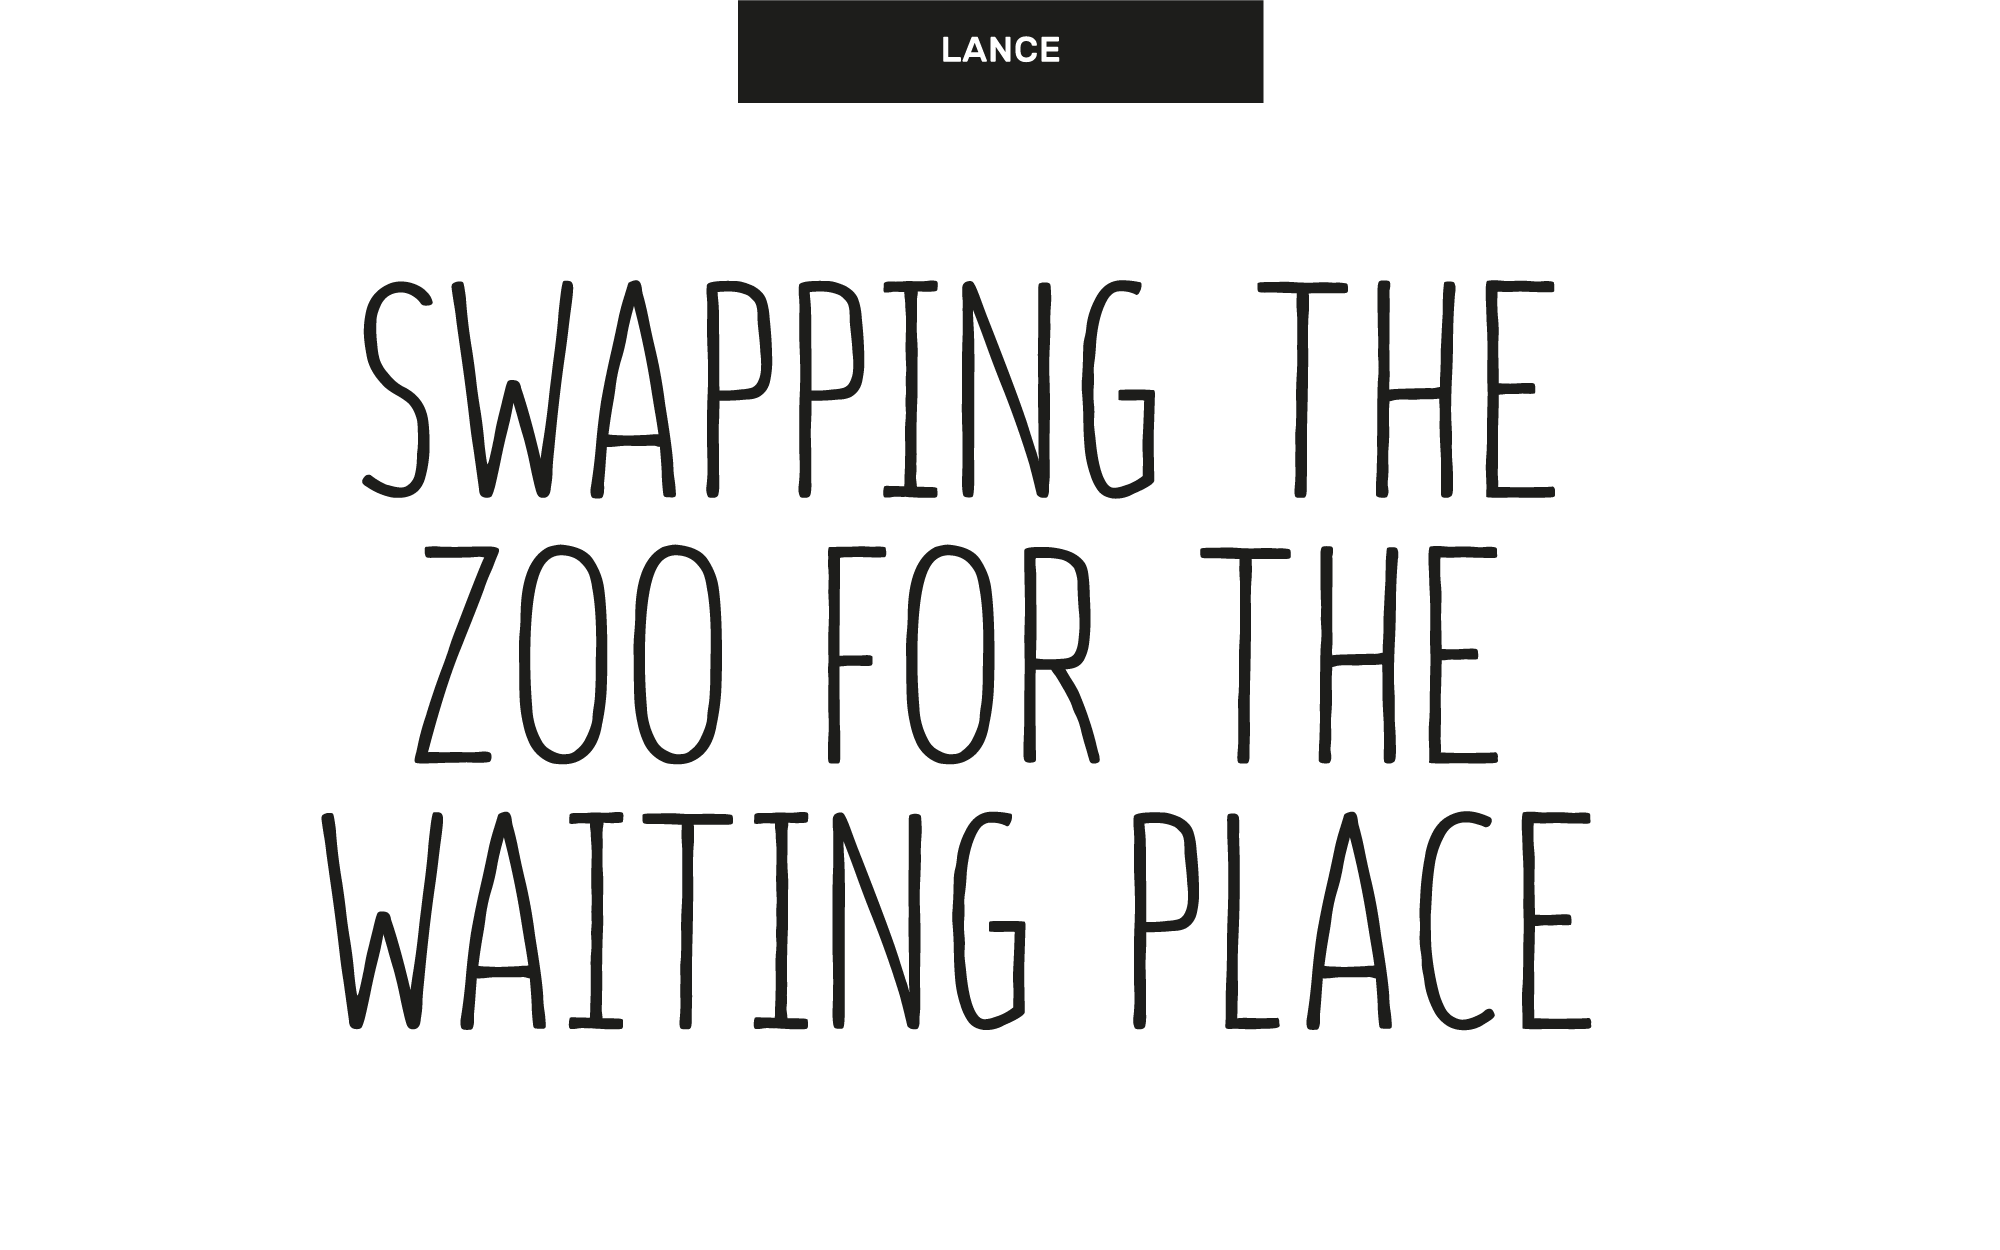 Lance - Swapping the zoo for the waiting place